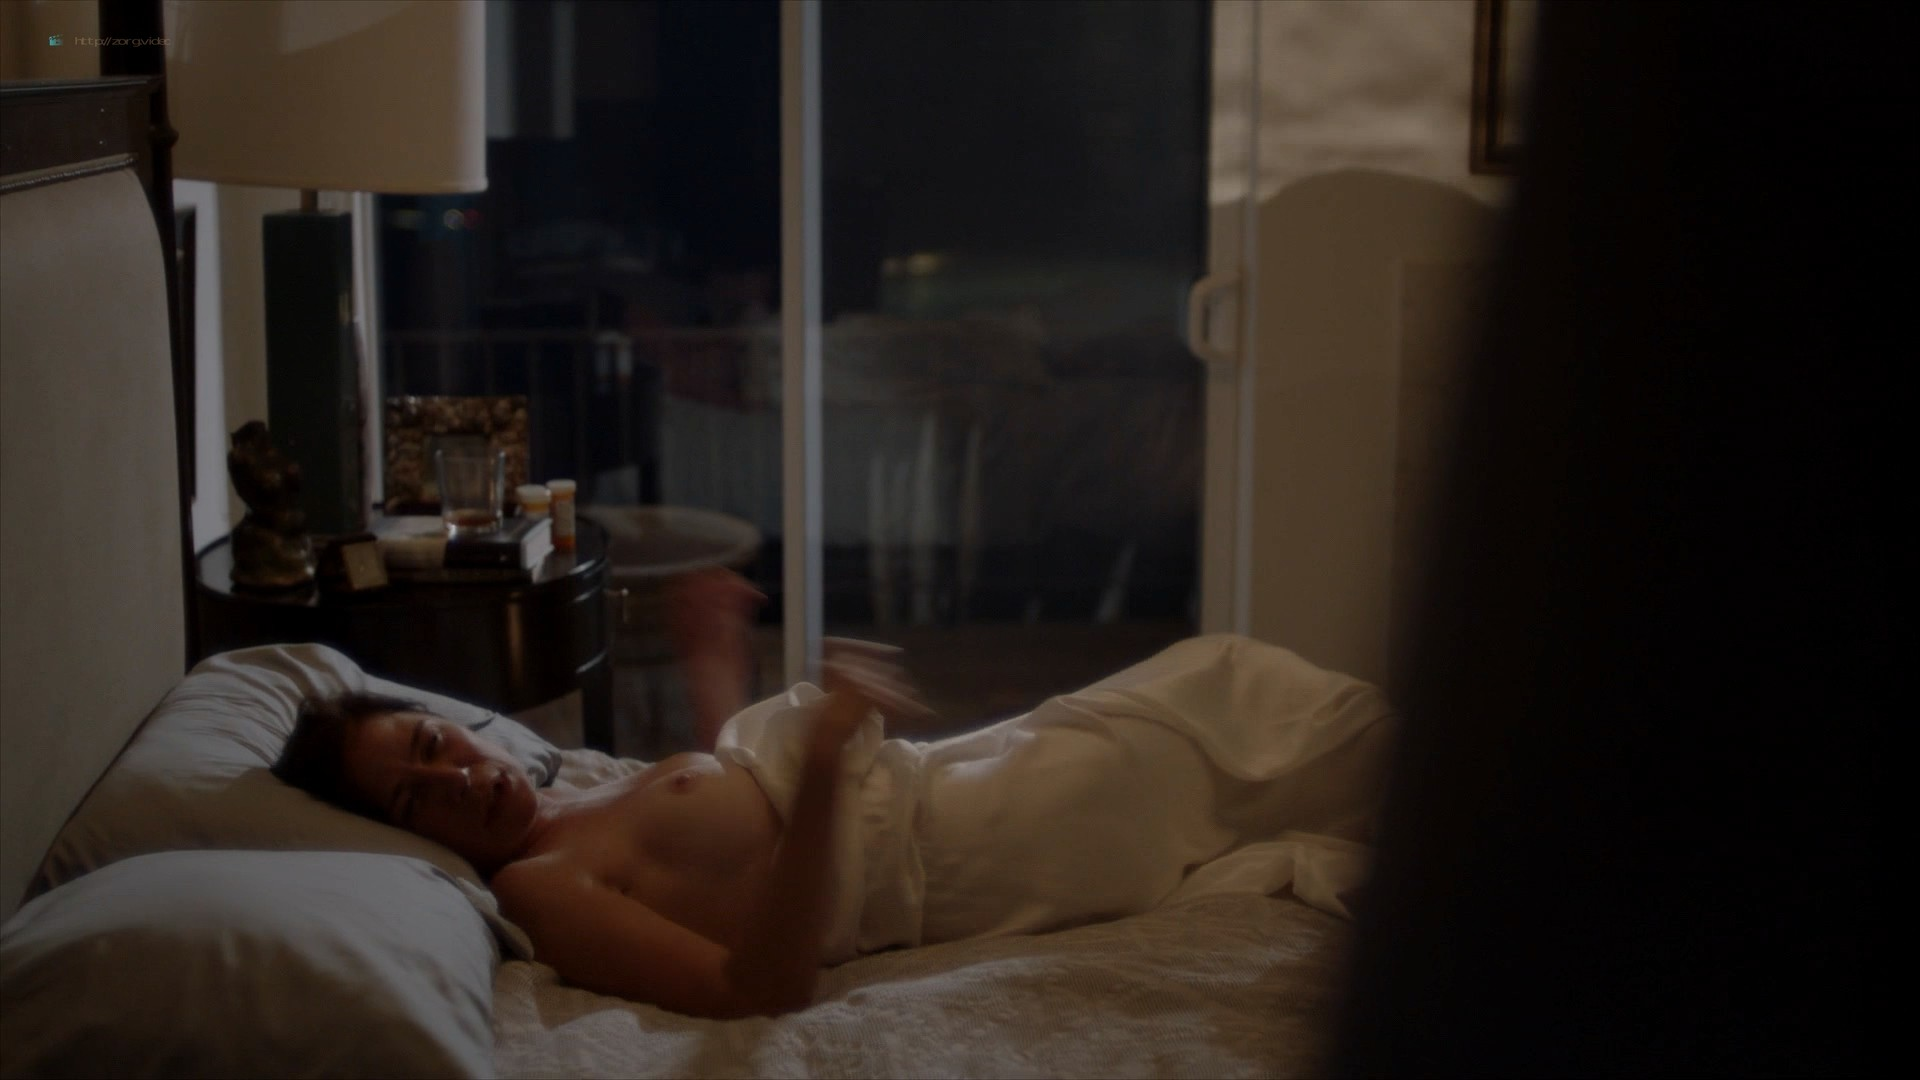 Anna Paquin nude hot sex Maura Tierney nude too- The Affair (2019) s5e1 HD 1080p WEB (11)